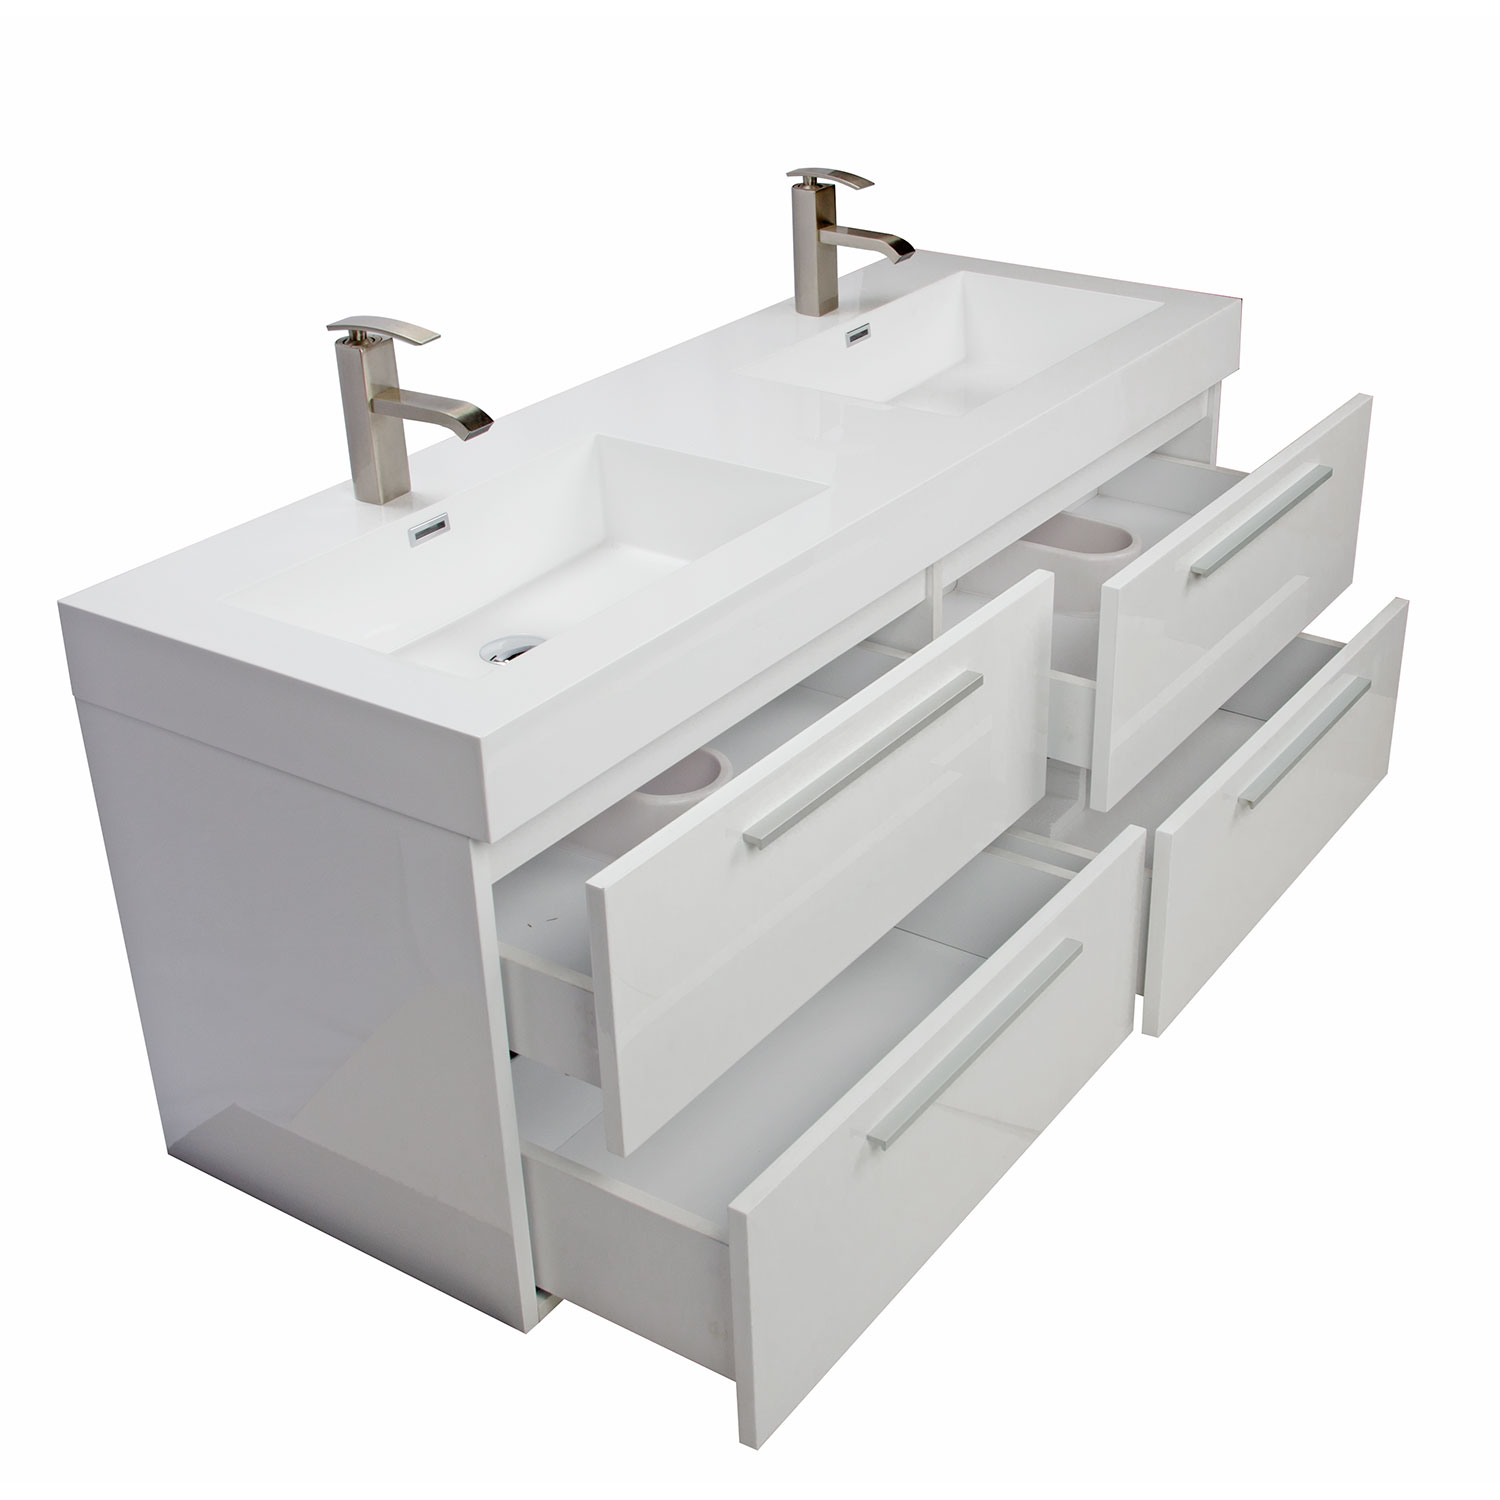 Buy 54 inch modern double sink vanity set with drawers gloss white tn b1380 hgw - Modern bathroom vanity double sink ...